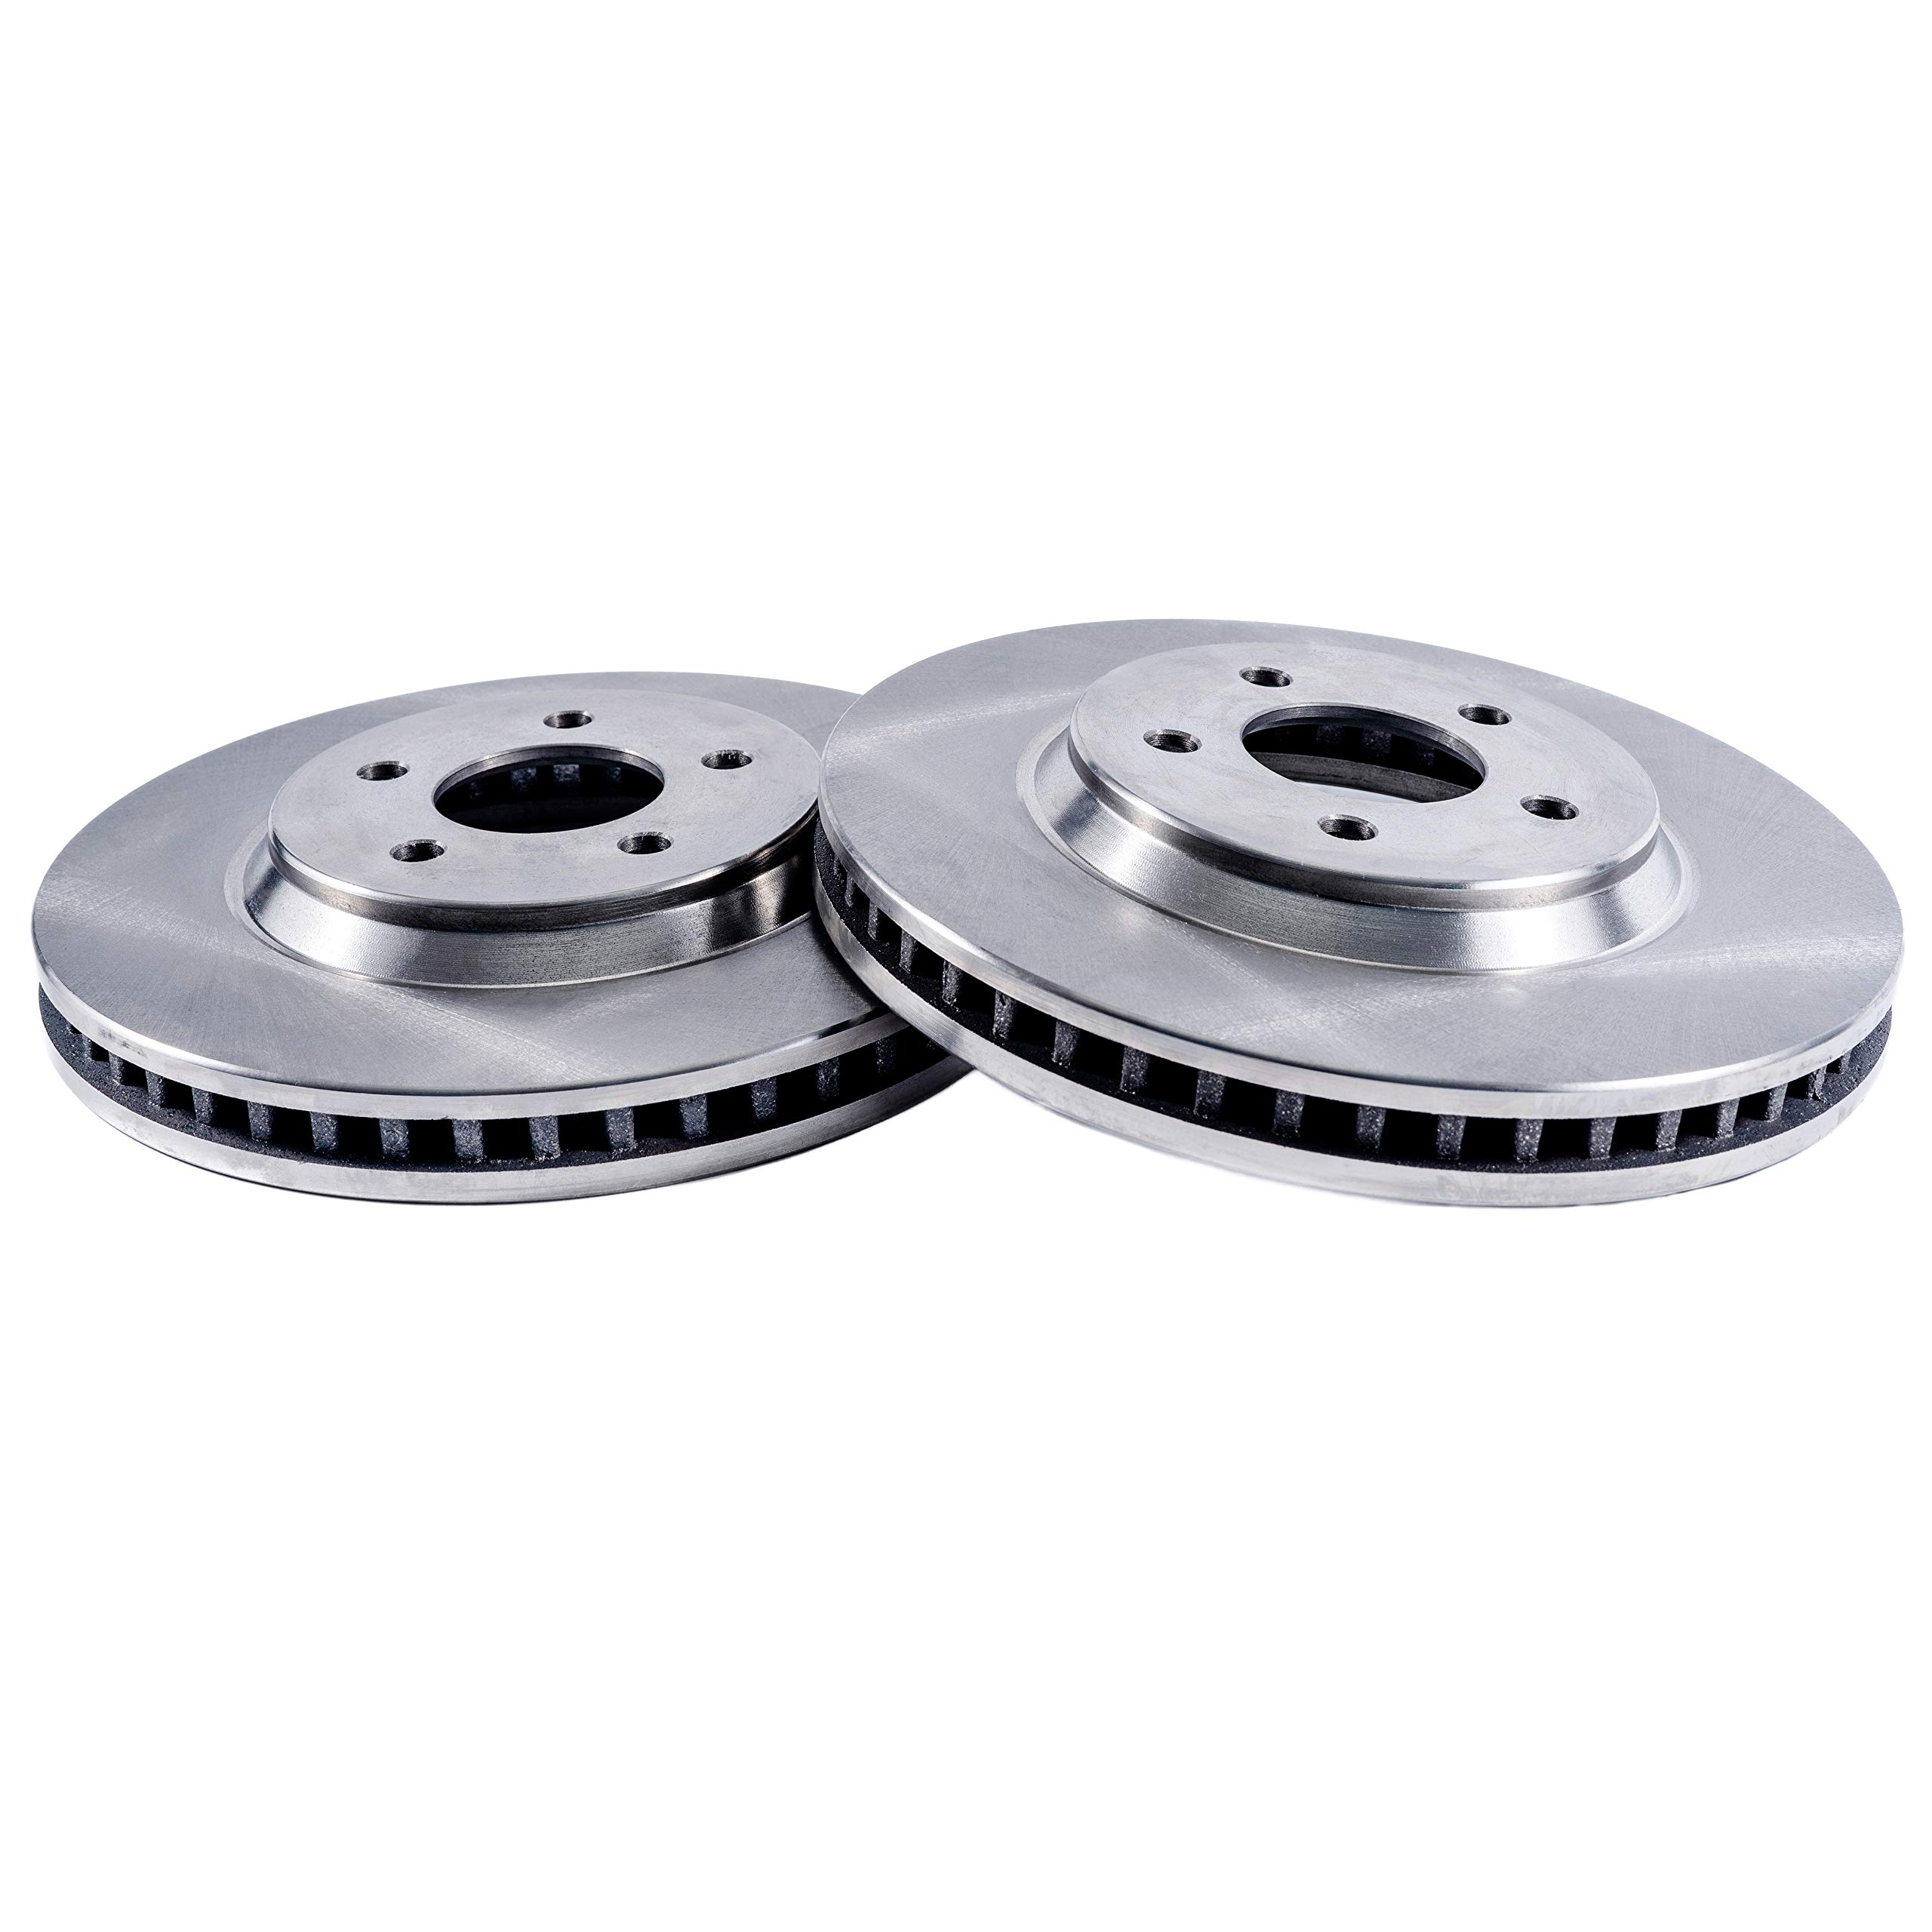 Detroit Axle - 11.81'' 300mm Premium FRONT Brake Rotors for CHECK VEHICLE FITMENT CHART